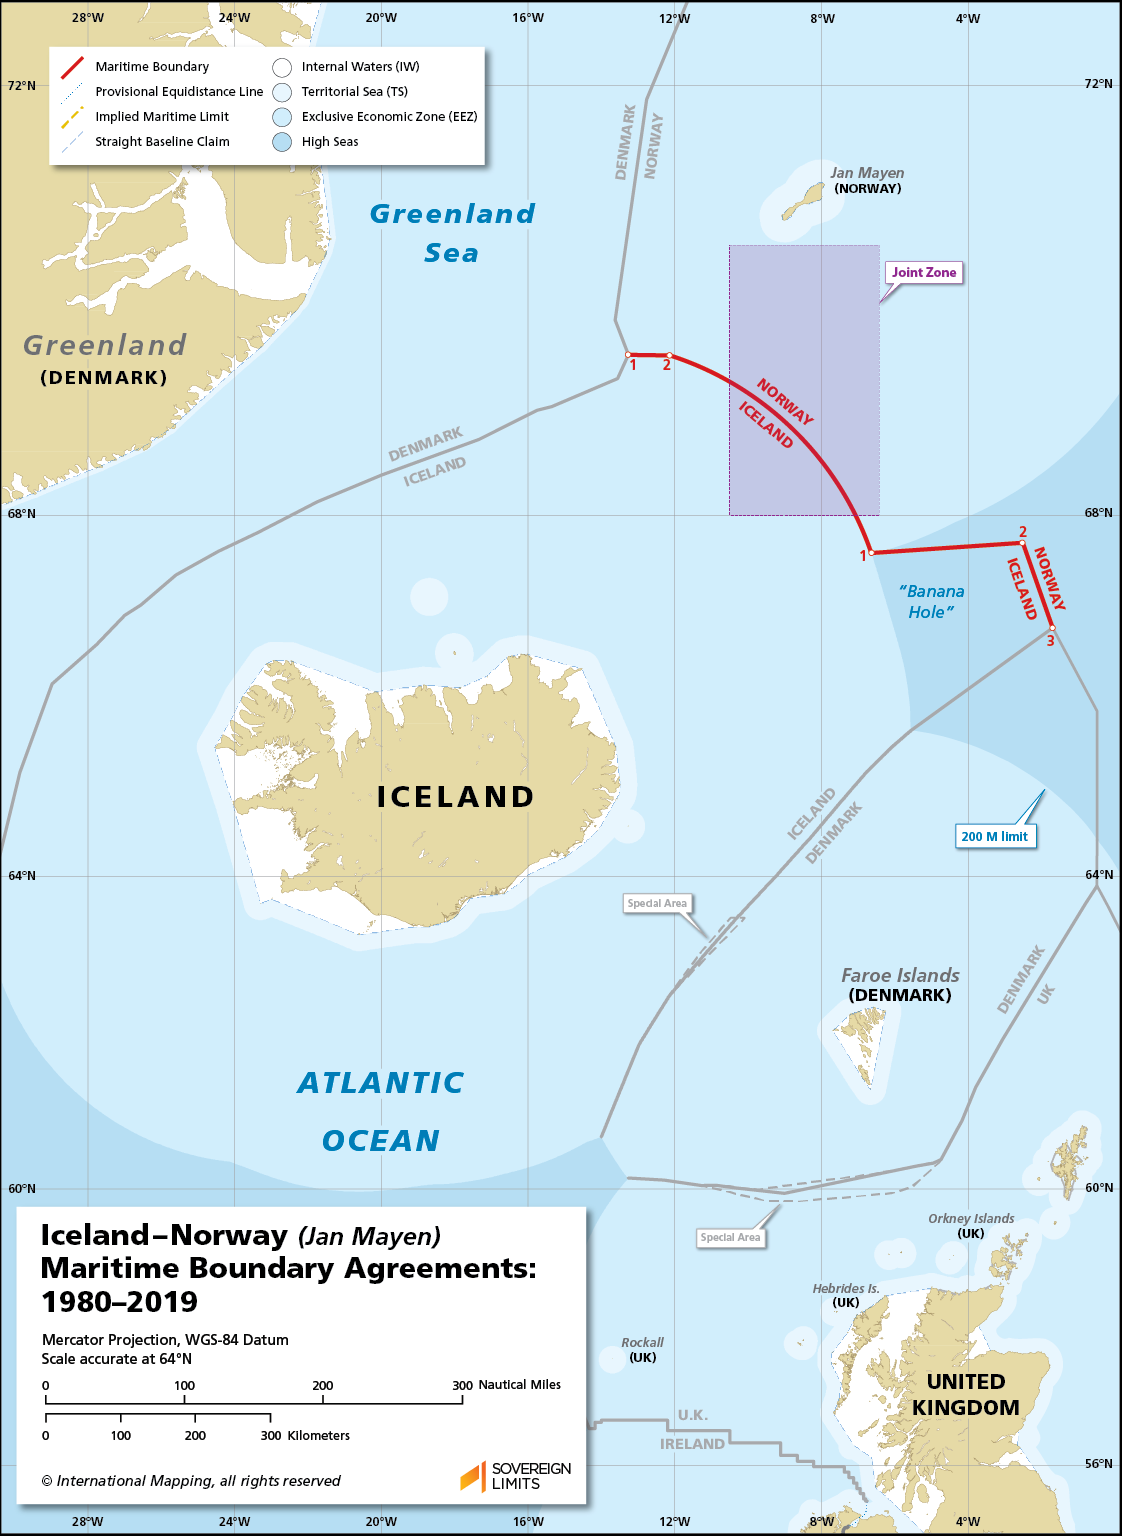 Map showing the maritime boundary between Iceland and Norway